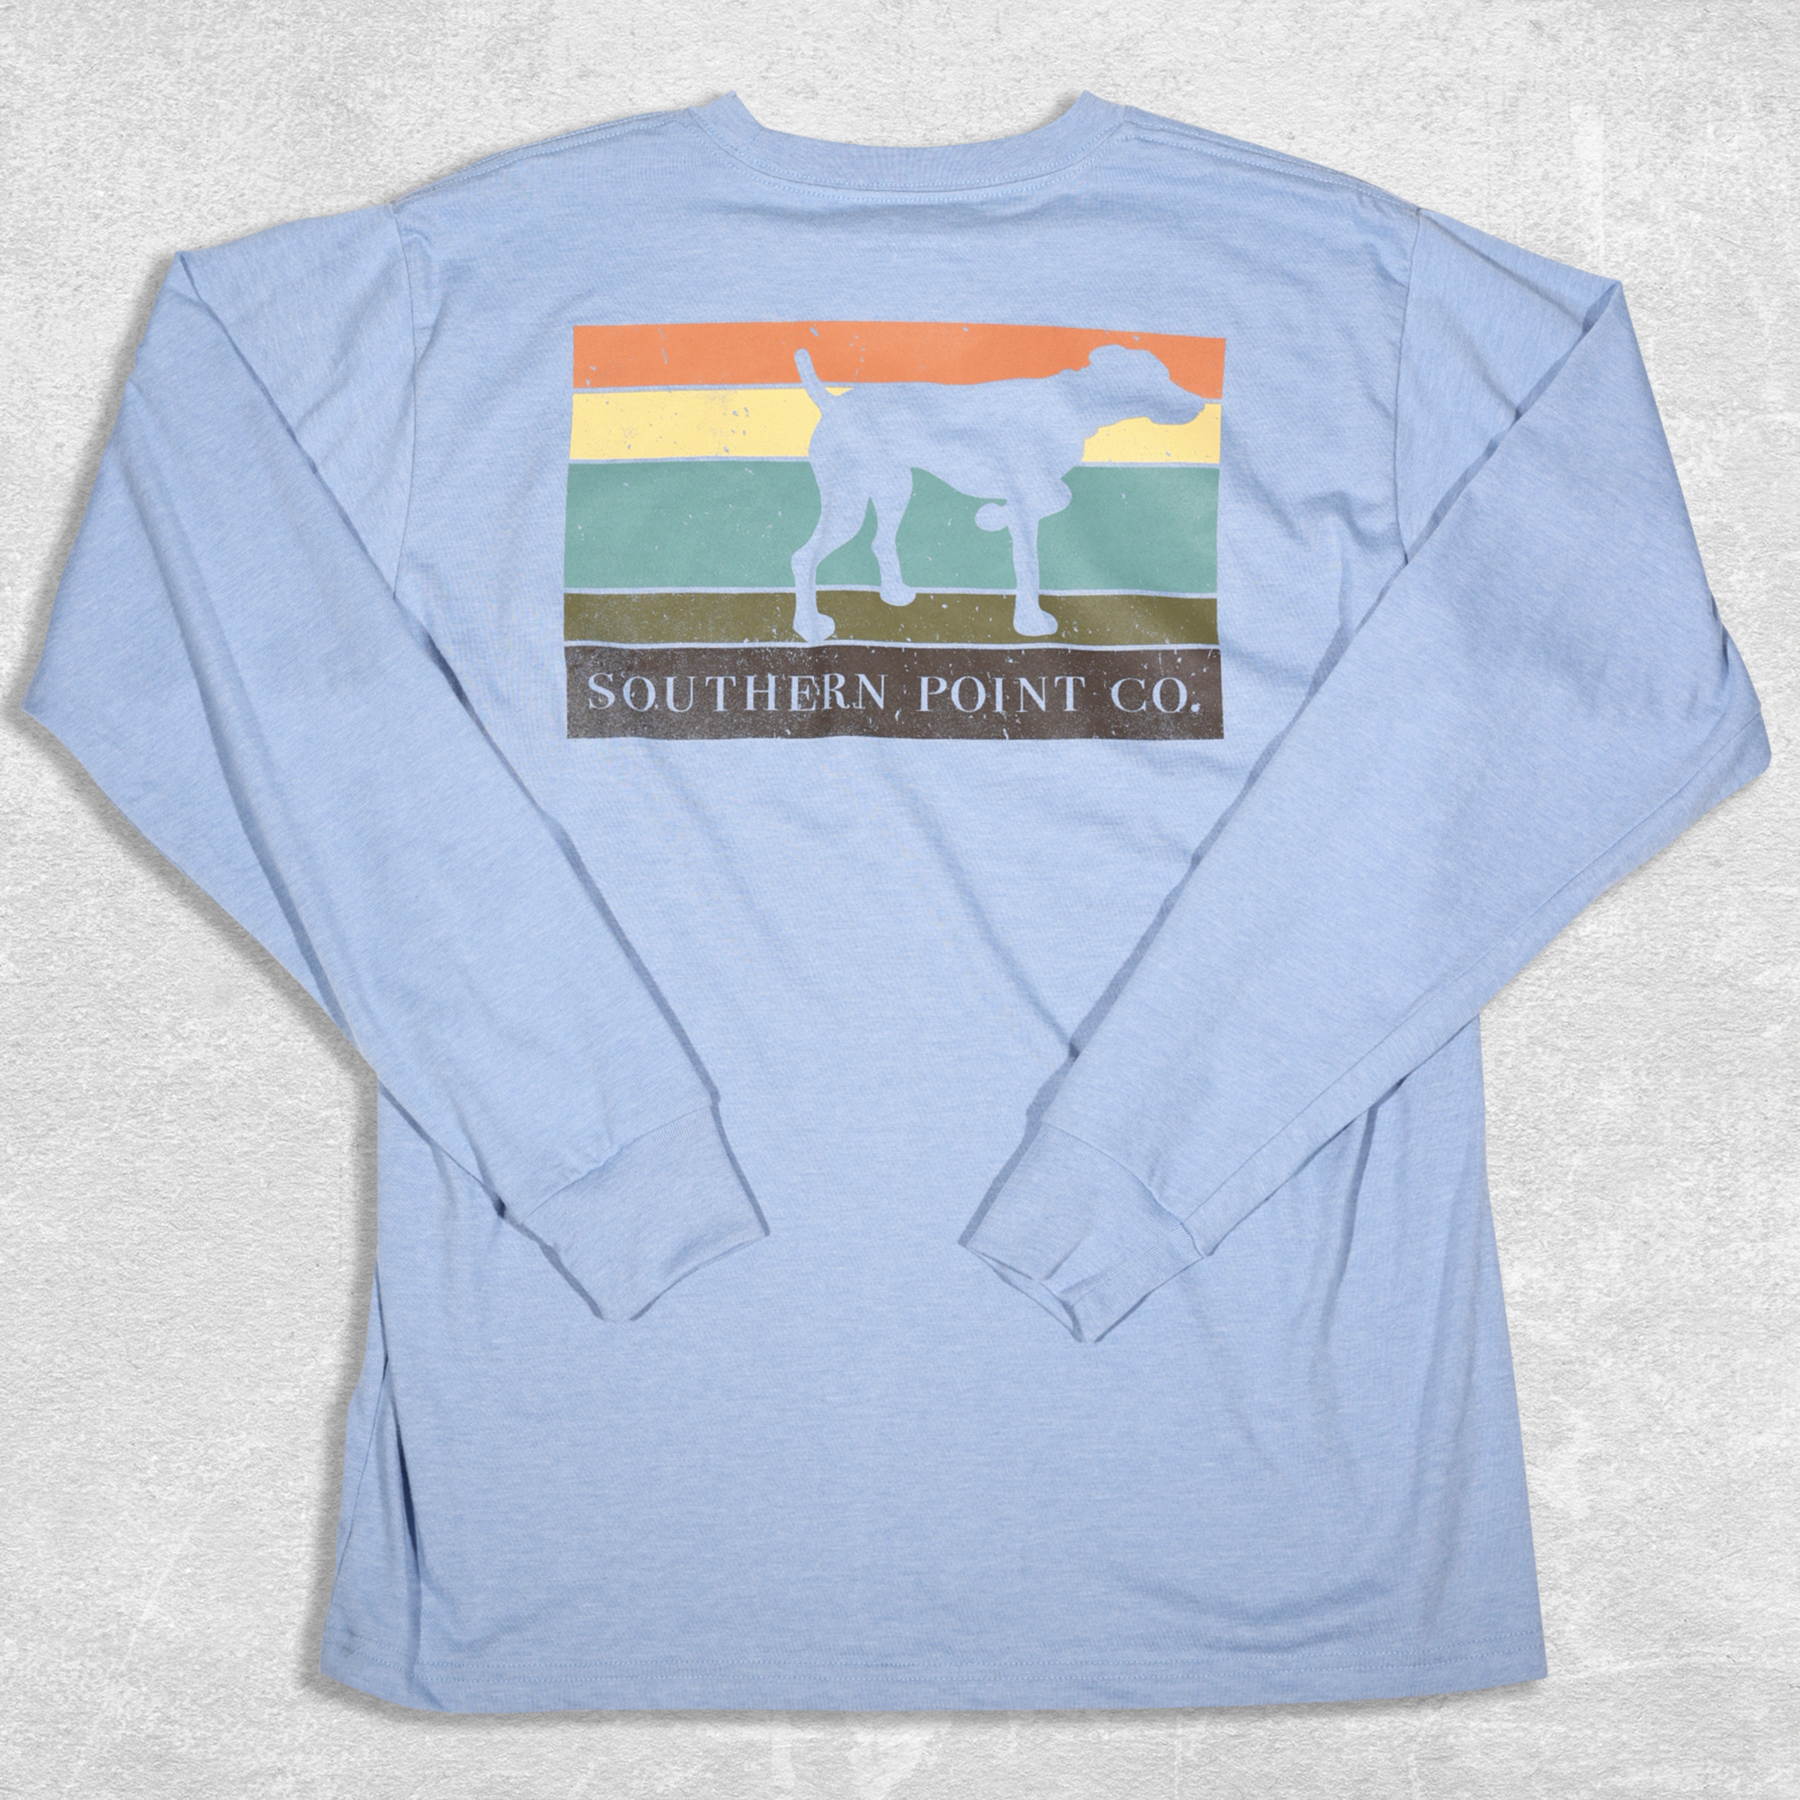 Southern Point Co. L/S Silhouette Block Tee